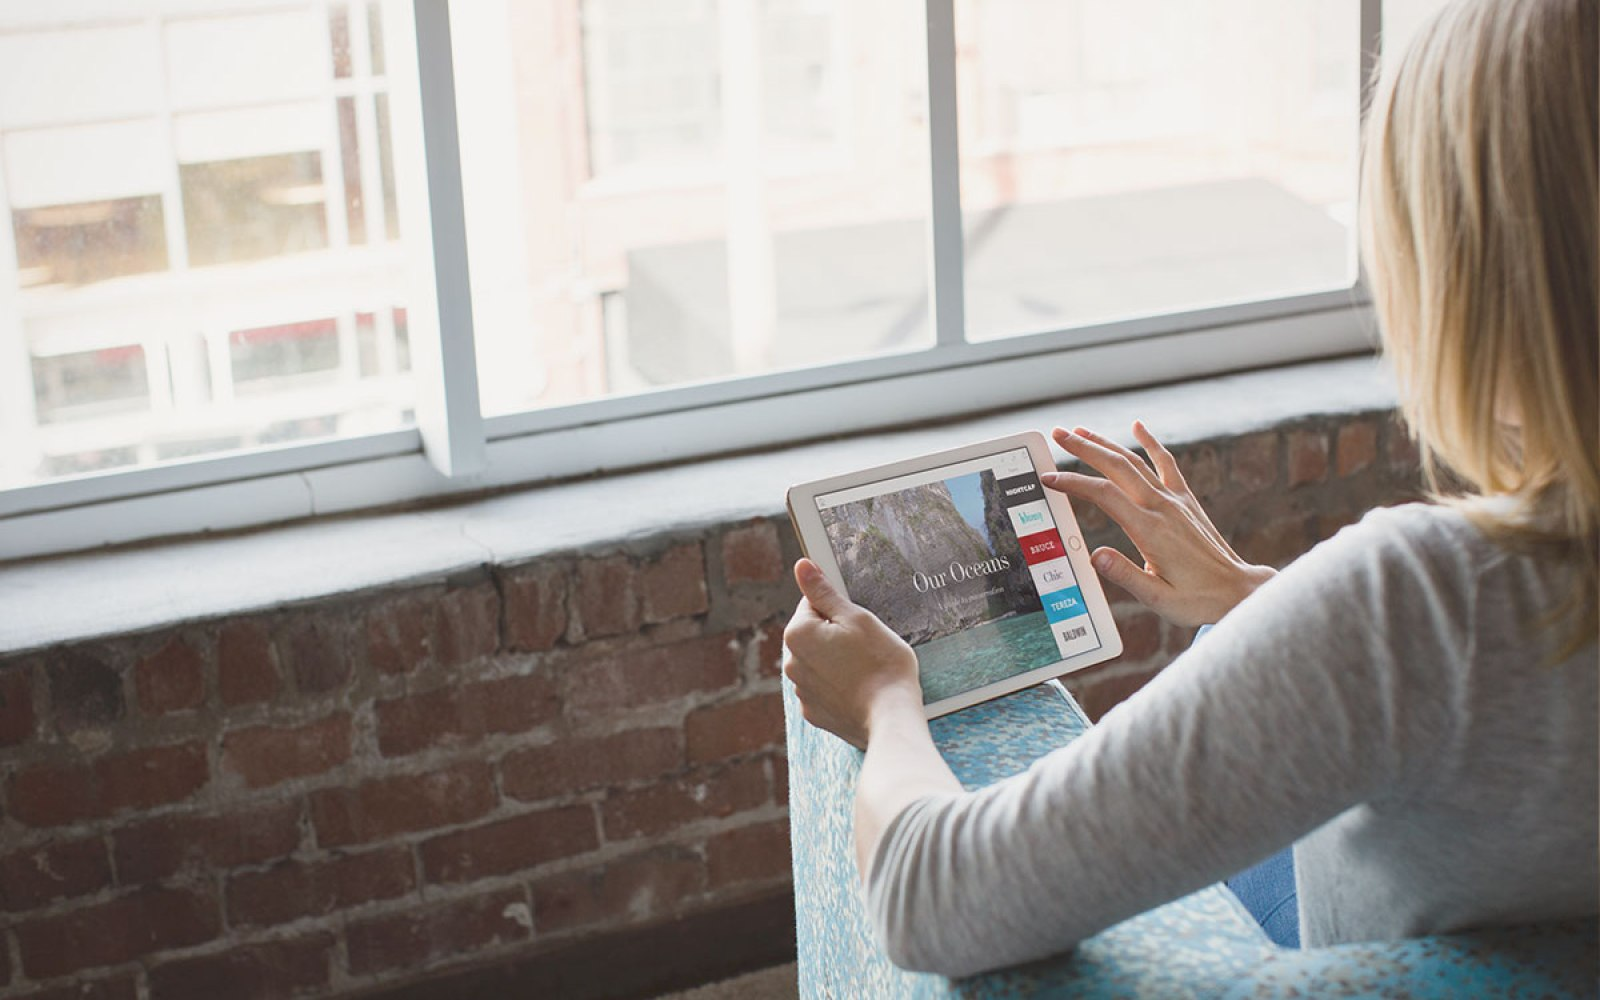 Adobe Slate lets you publish magazine-like stories from your iPad without design expertise